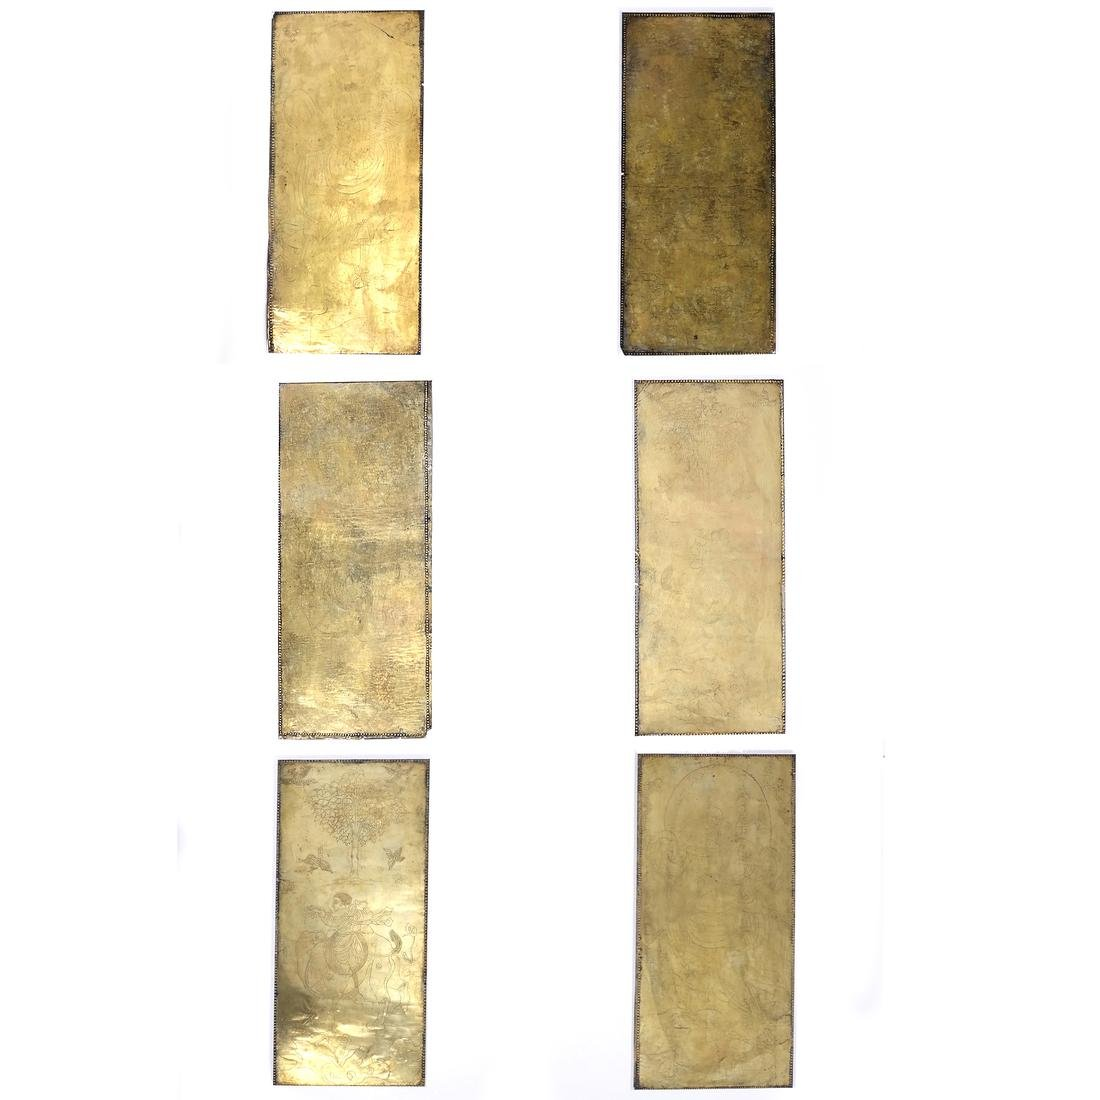 6 ASIAN GILT-SILVER RECTANGULAR MANUSCRIPT SHEETS